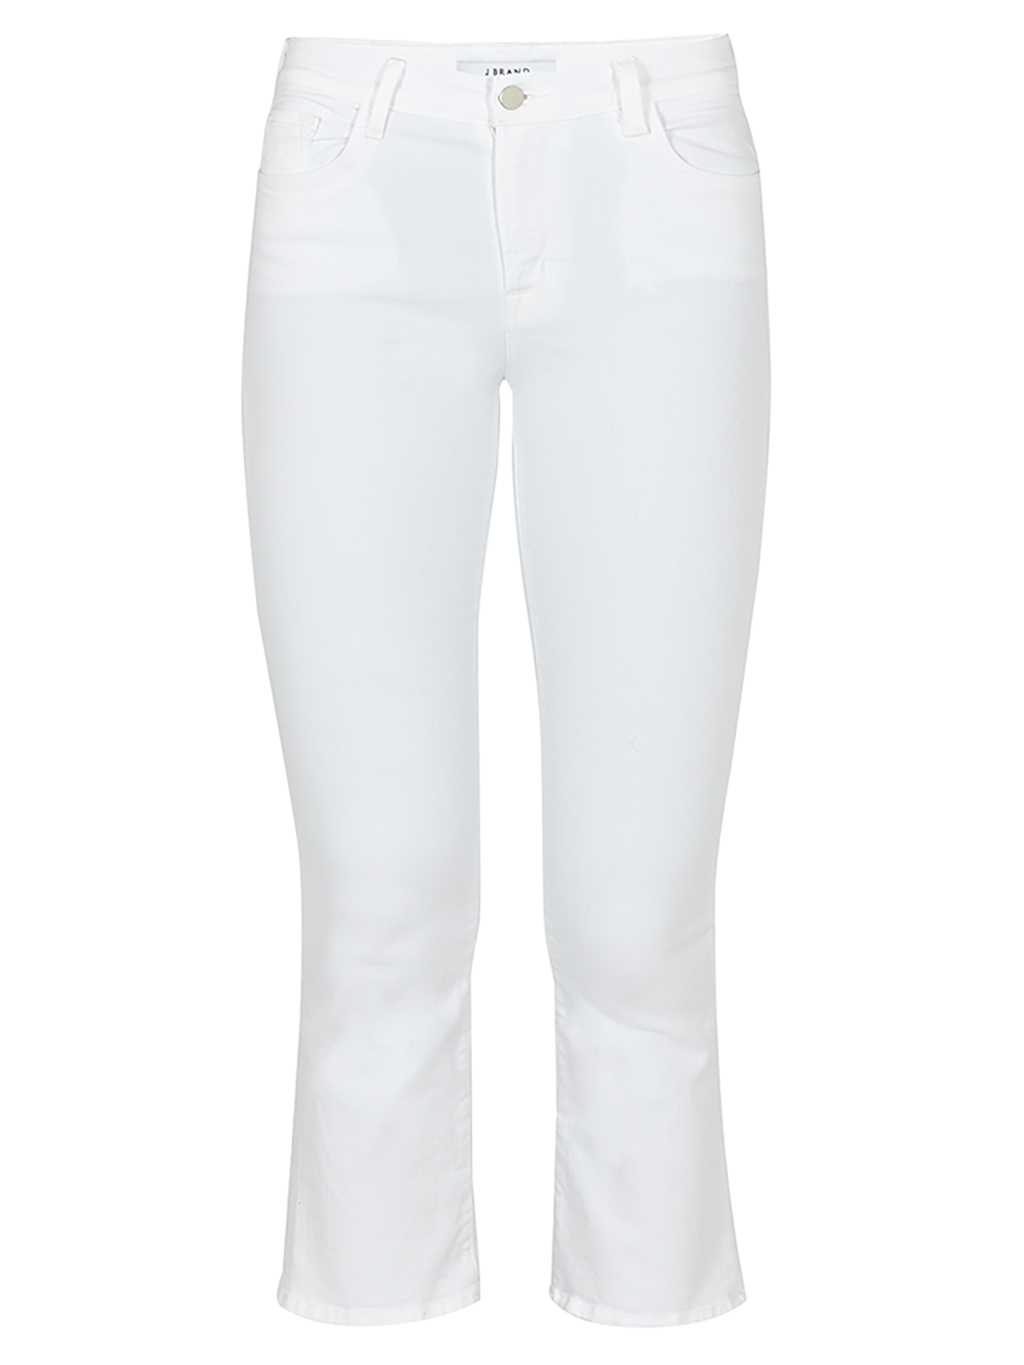 Selena Mid Rise Crop Jean - style: skinny leg; pattern: plain; pocket detail: traditional 5 pocket; waist: mid/regular rise; predominant colour: white; occasions: casual; length: calf length; fibres: cotton - stretch; texture group: denim; pattern type: fabric; season: s/s 2016; wardrobe: highlight